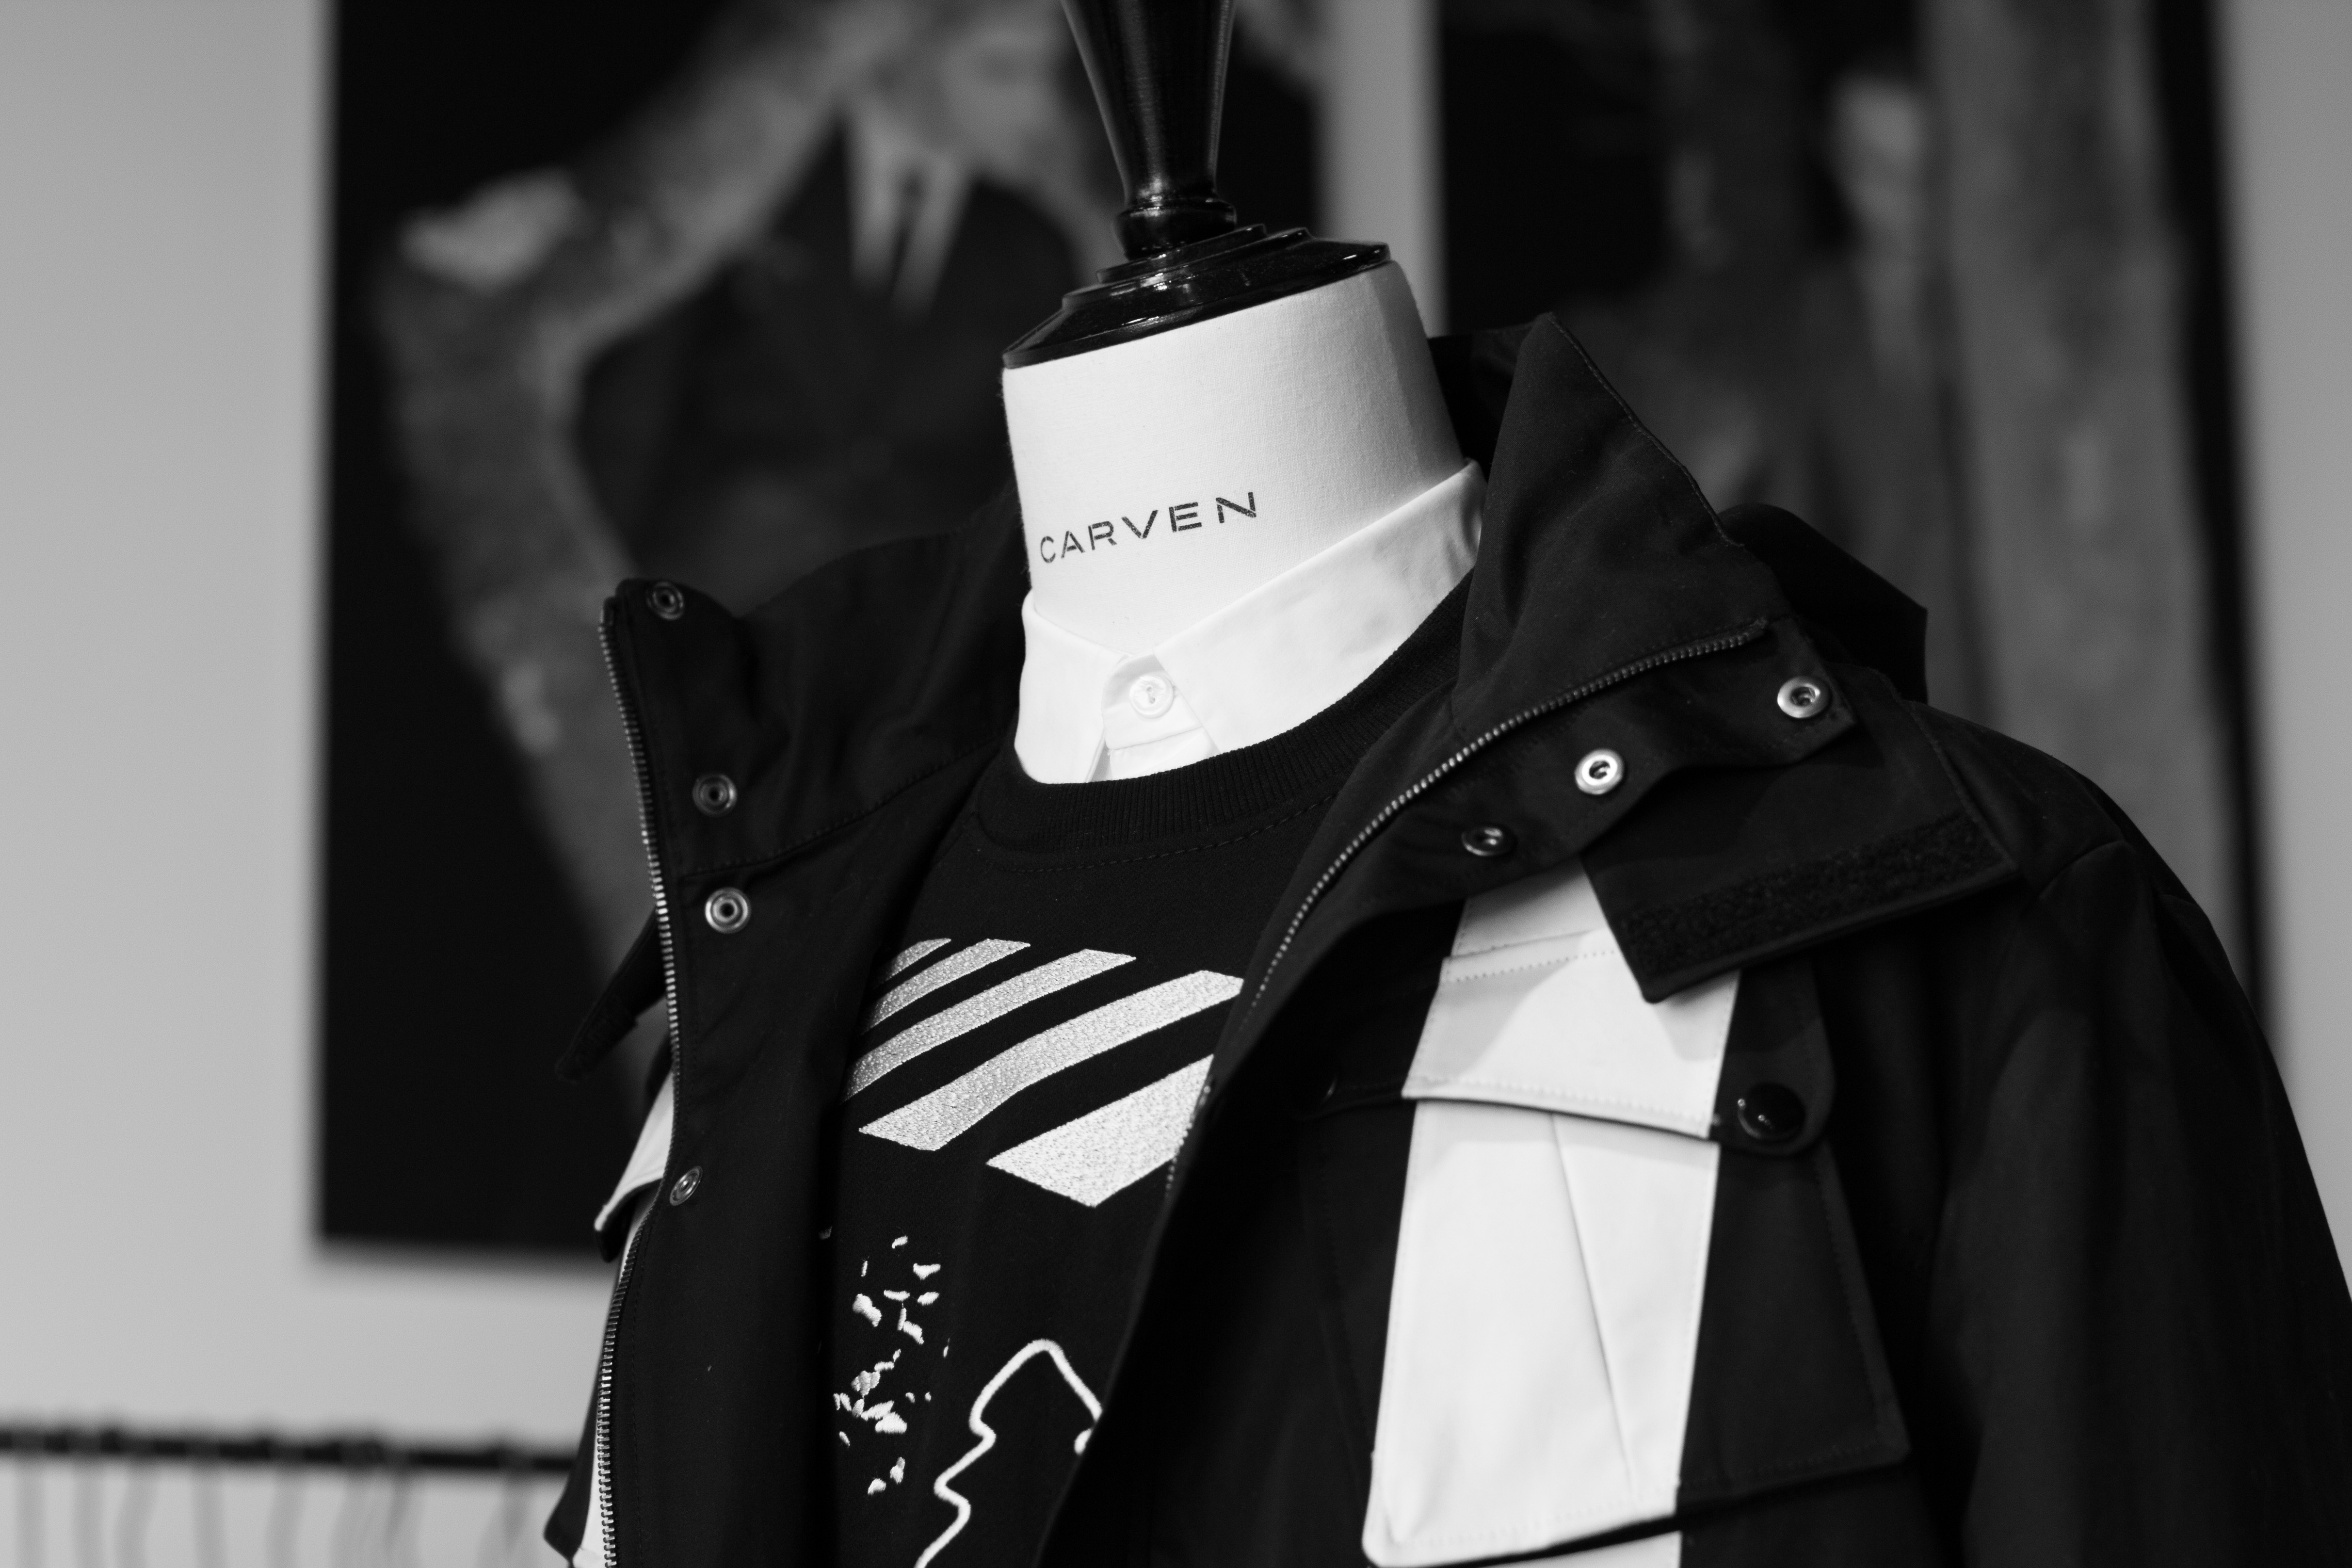 Black and white parka jacket at Carven